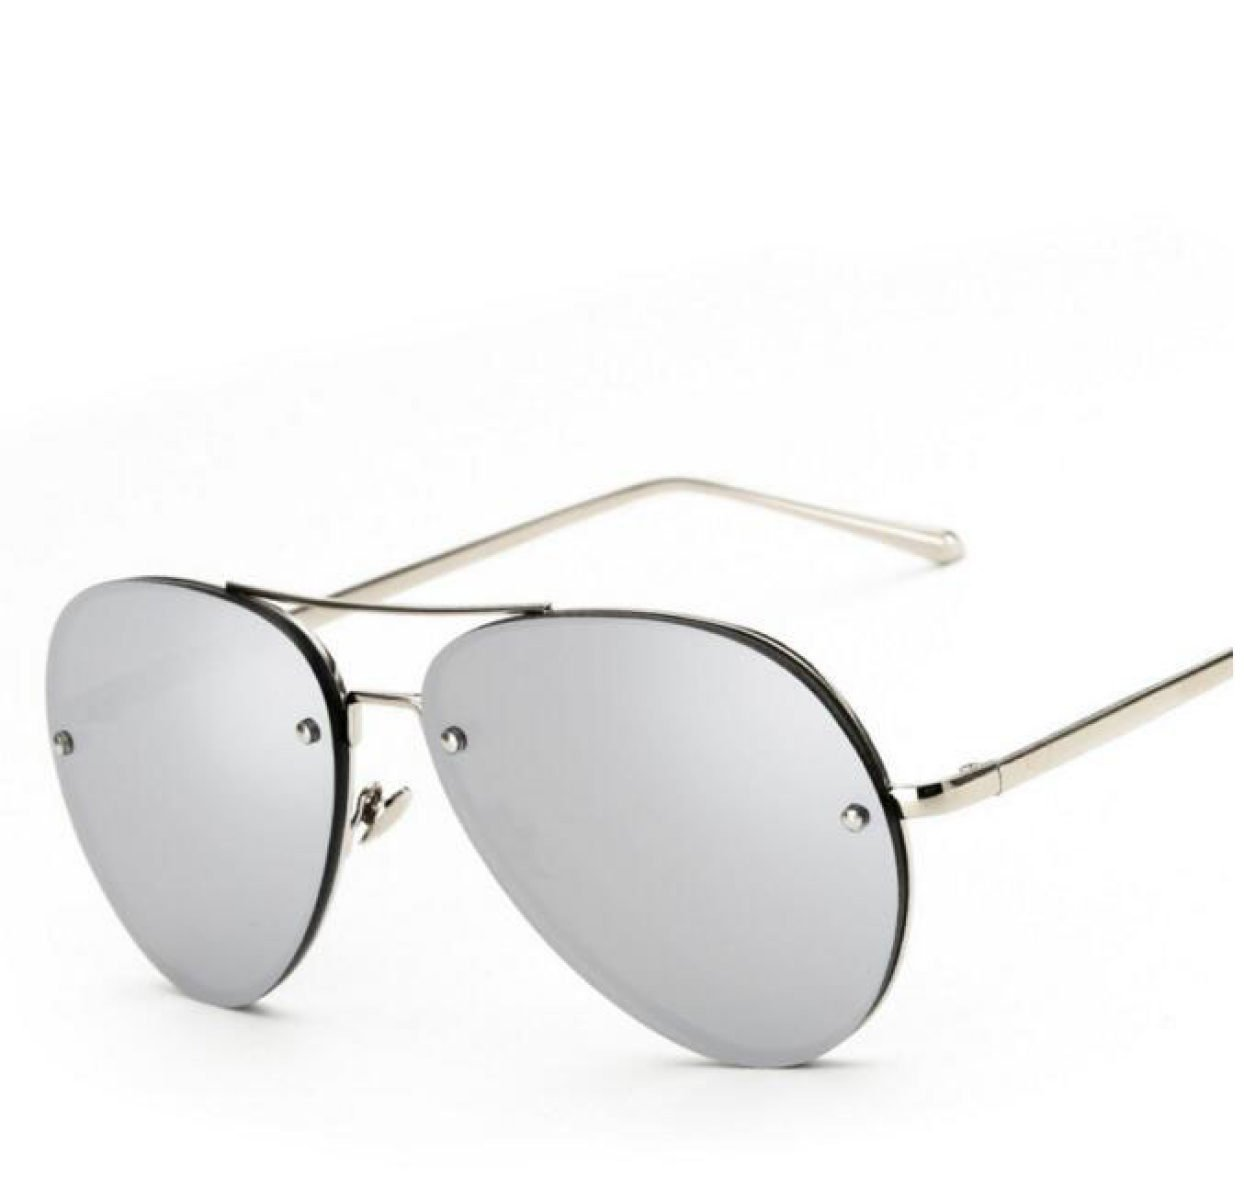 Personality Trend Aviator Sonnenbrille Fahrer Sonnenbrille,A3